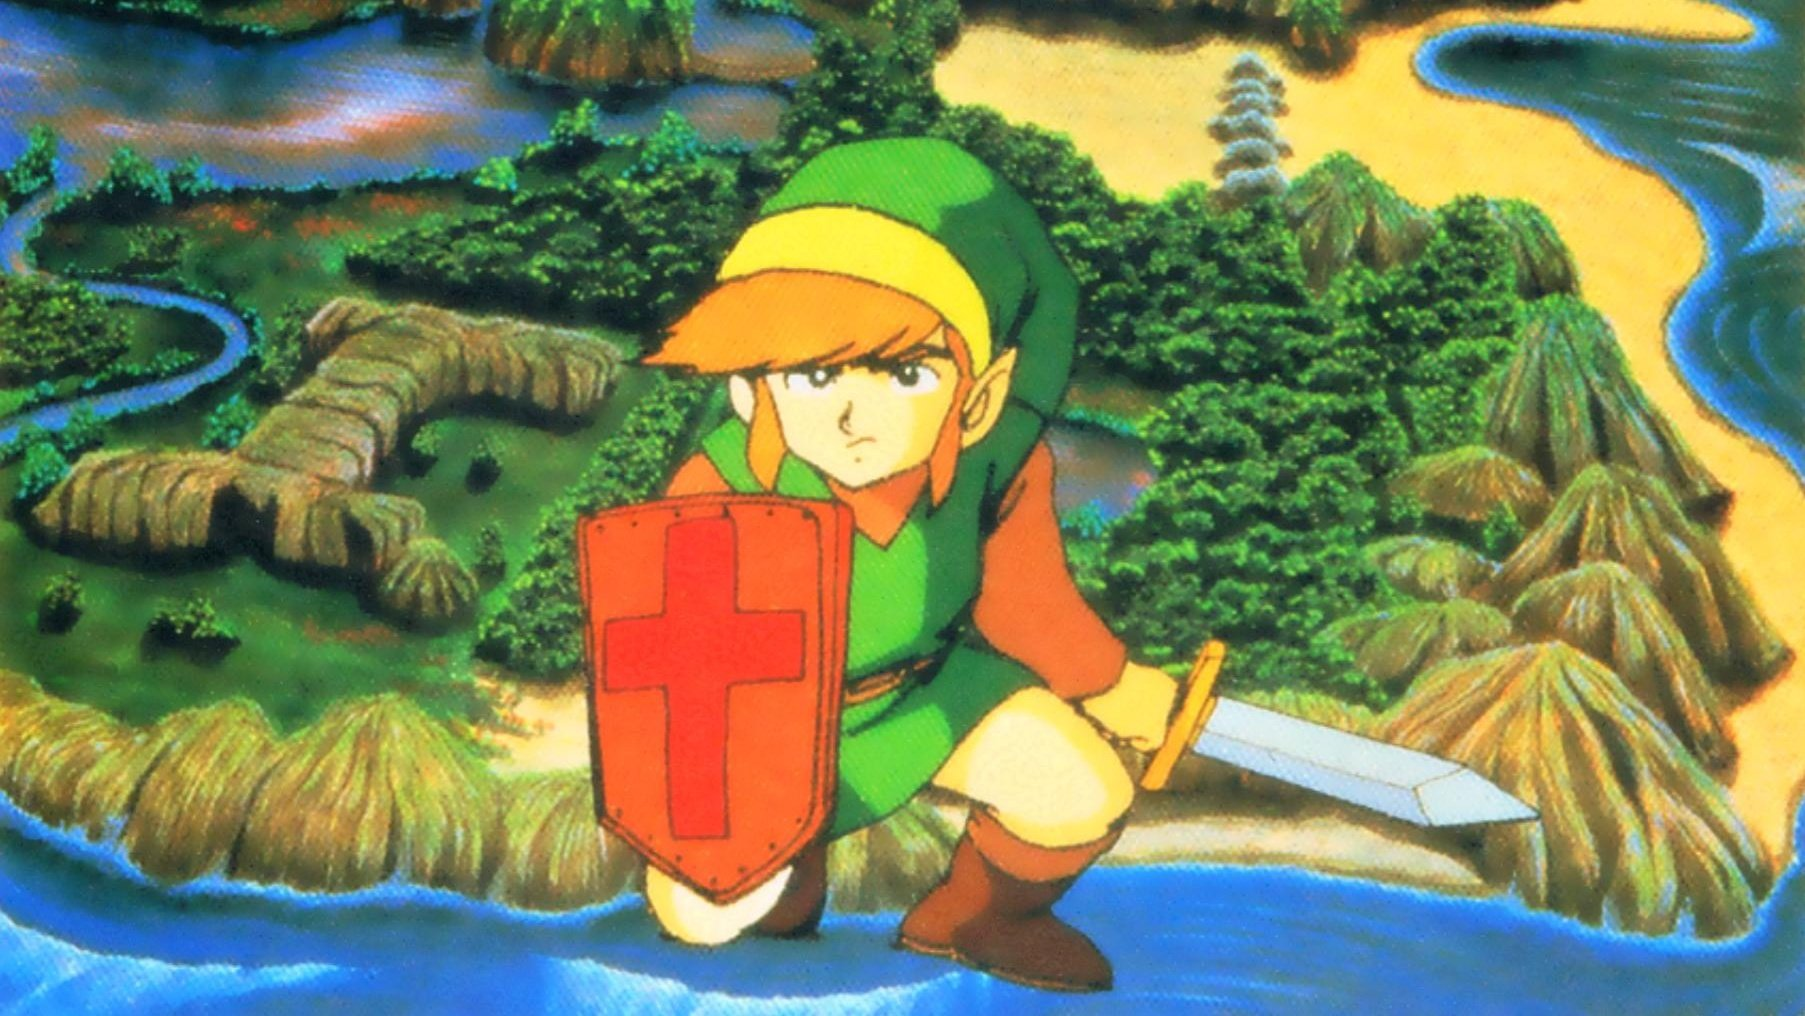 Nintendo gives Switch subscribers decked-out NES Zelda save file